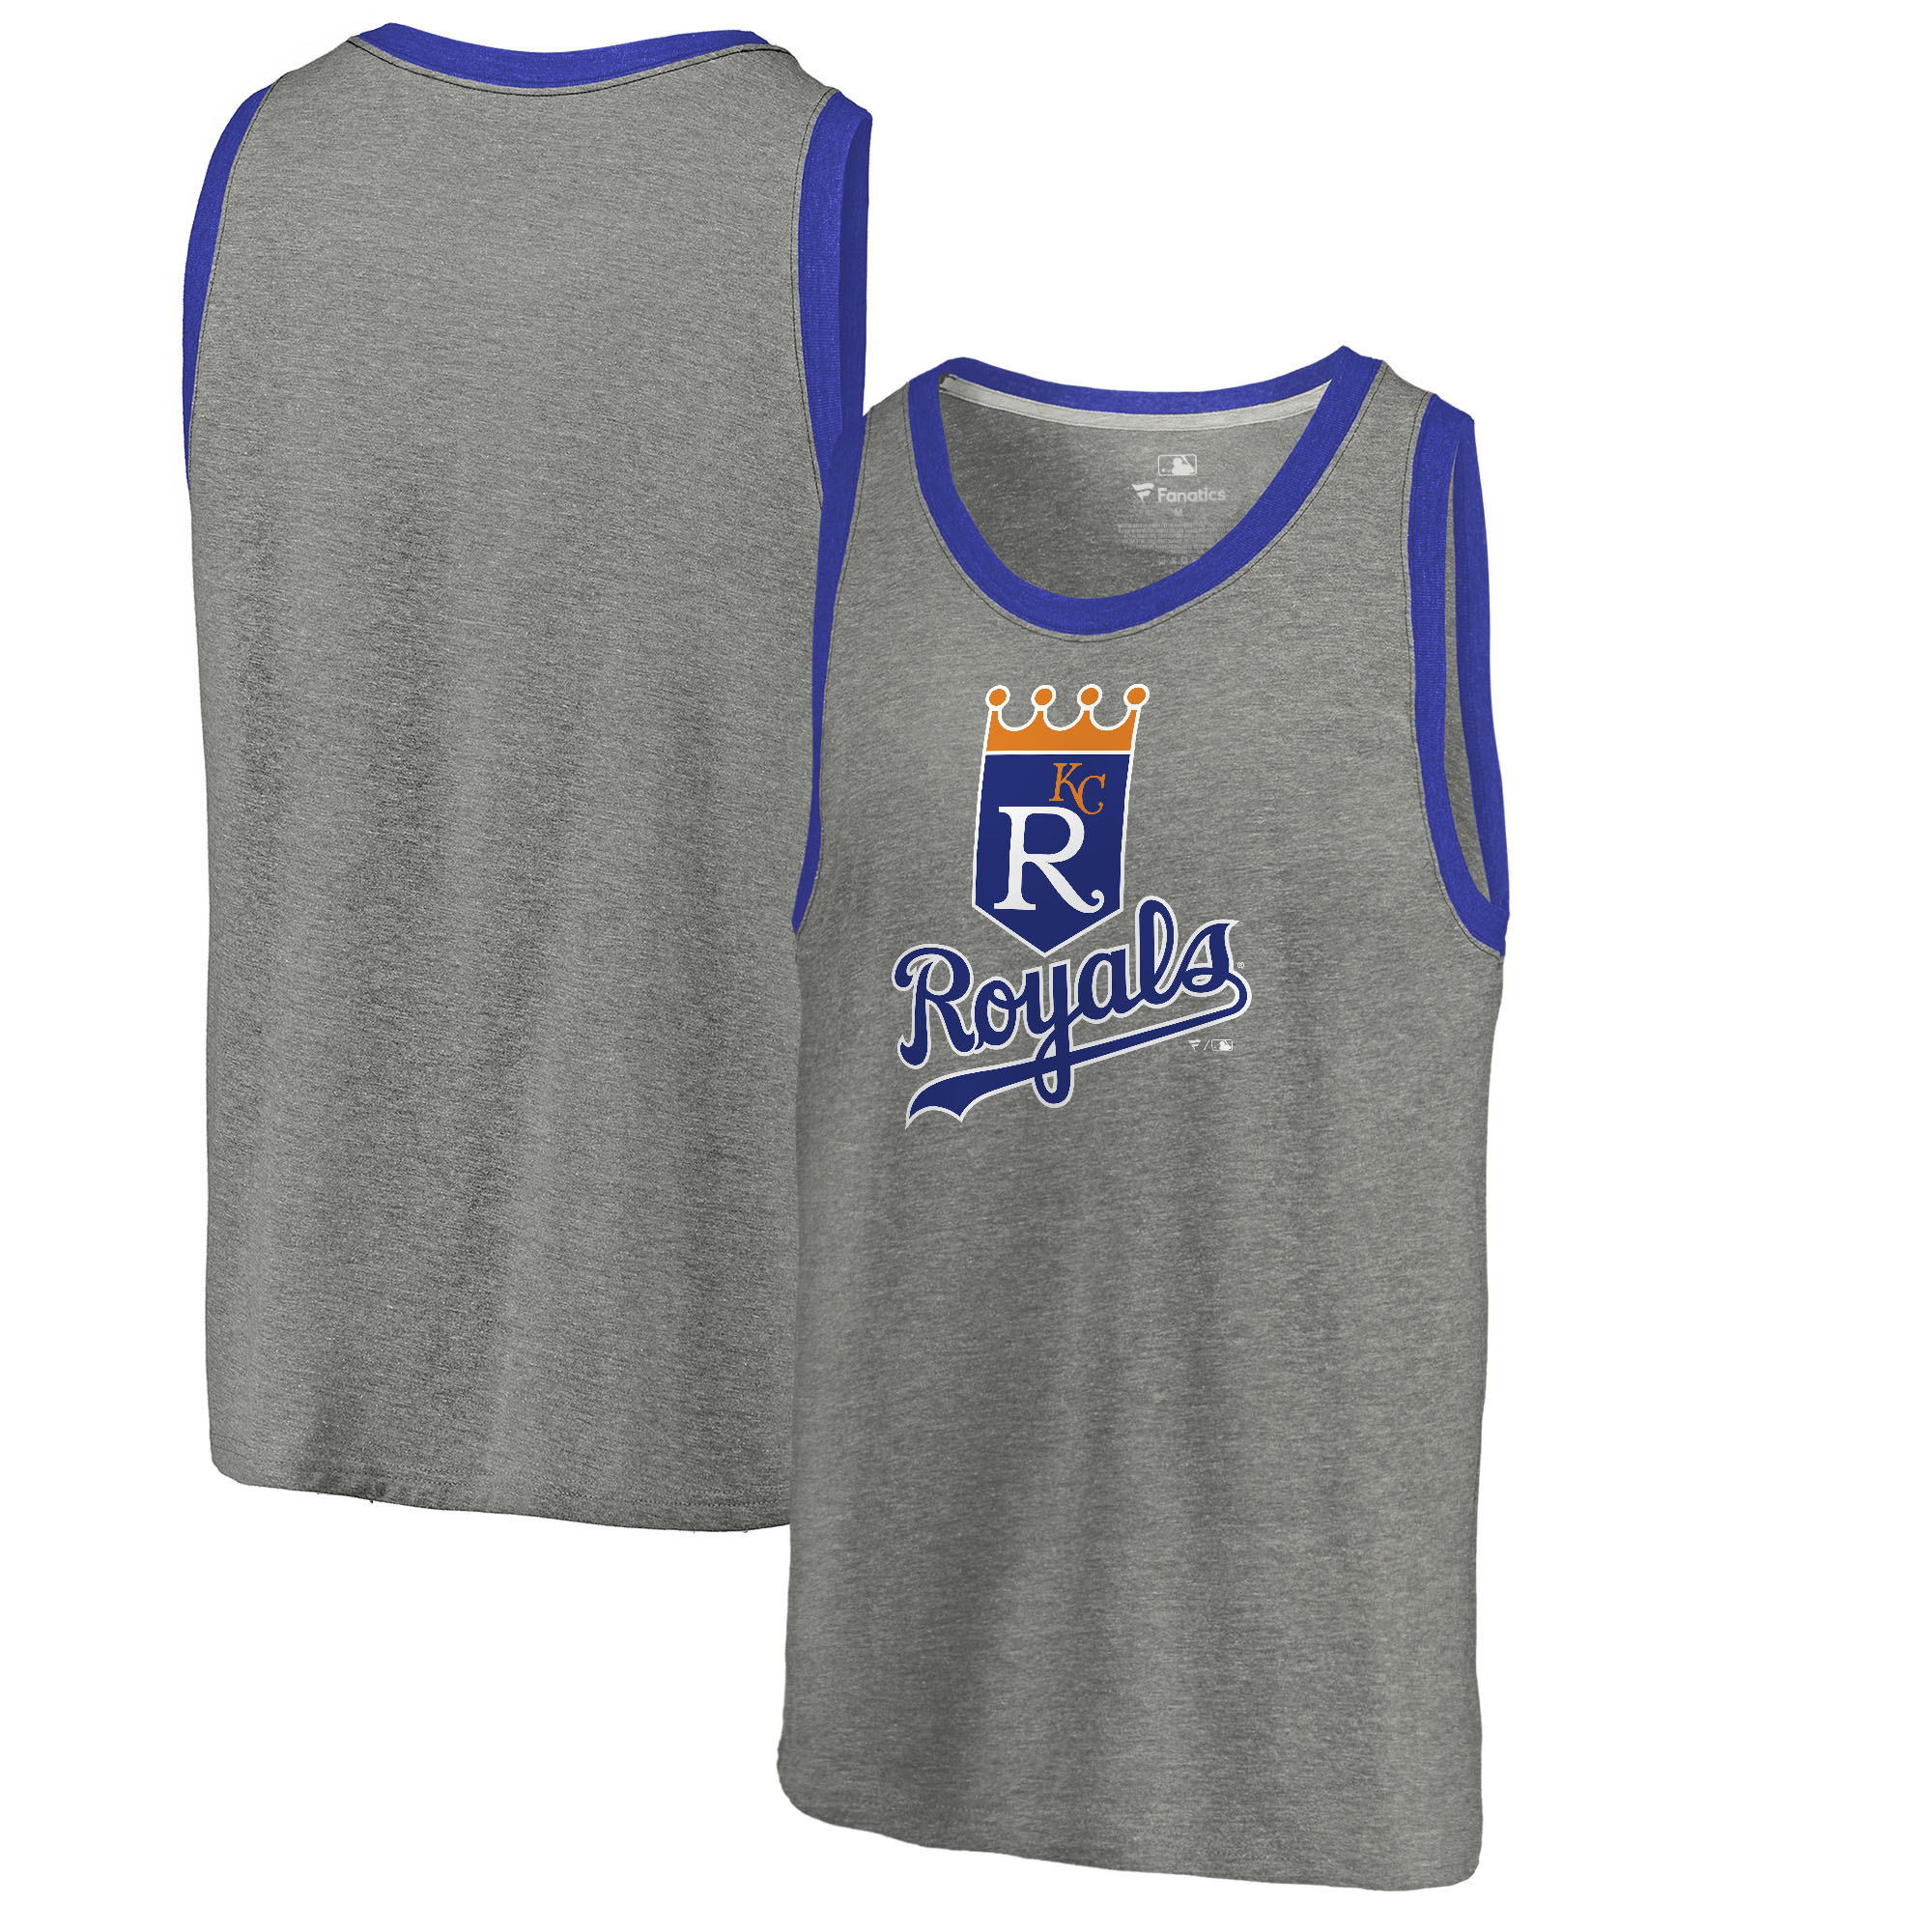 Kansas City Royals Fanatics Branded Cooperstown Collection Huntington Tri-Blend Tank Top - Heathered Gray